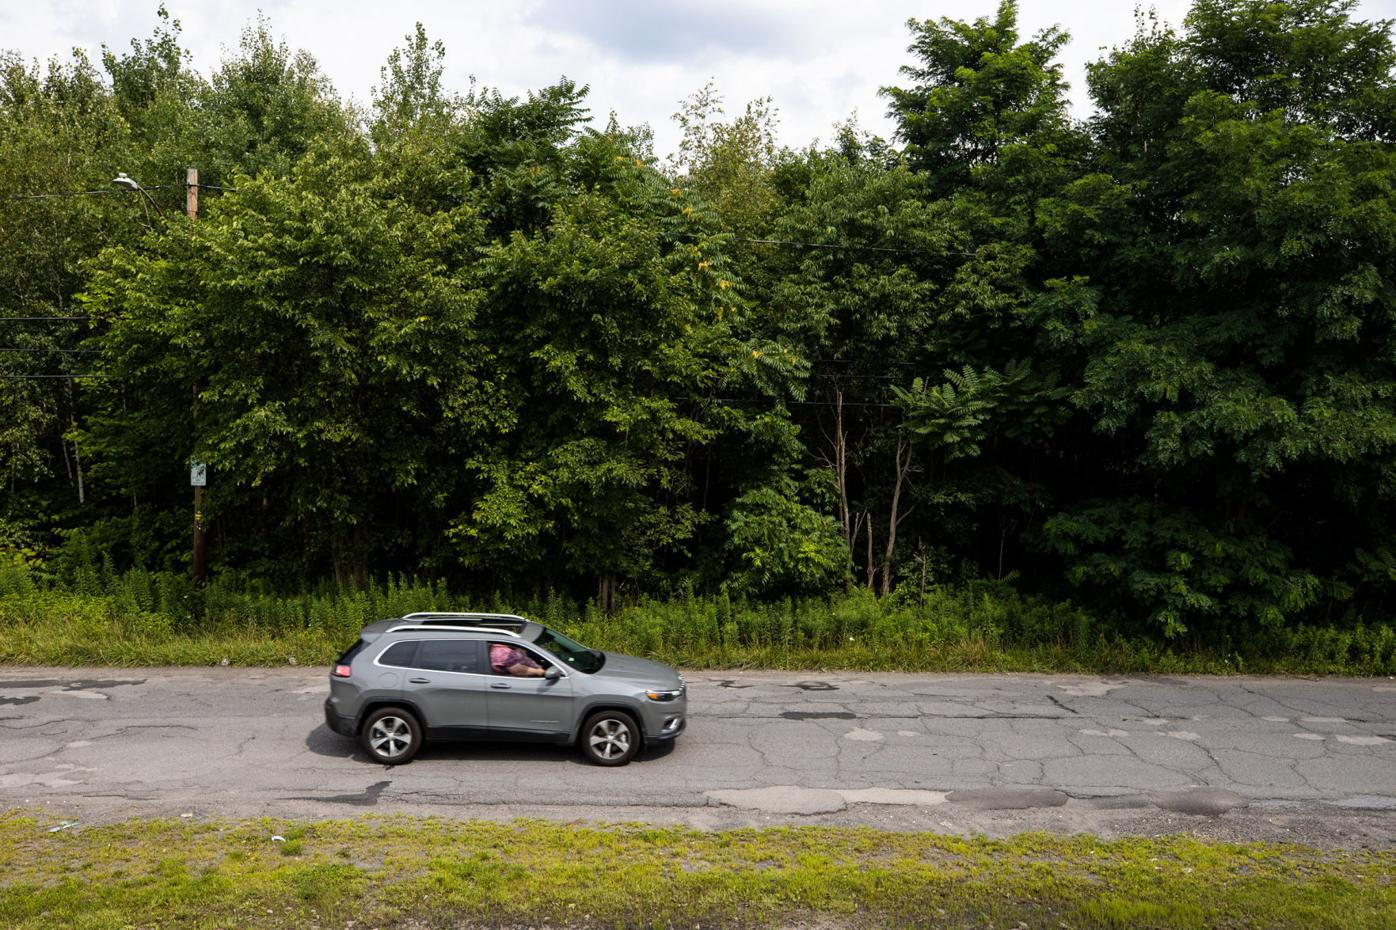 Monday Update: Boulevard Avenue headed for better upgrade, DPW leader says